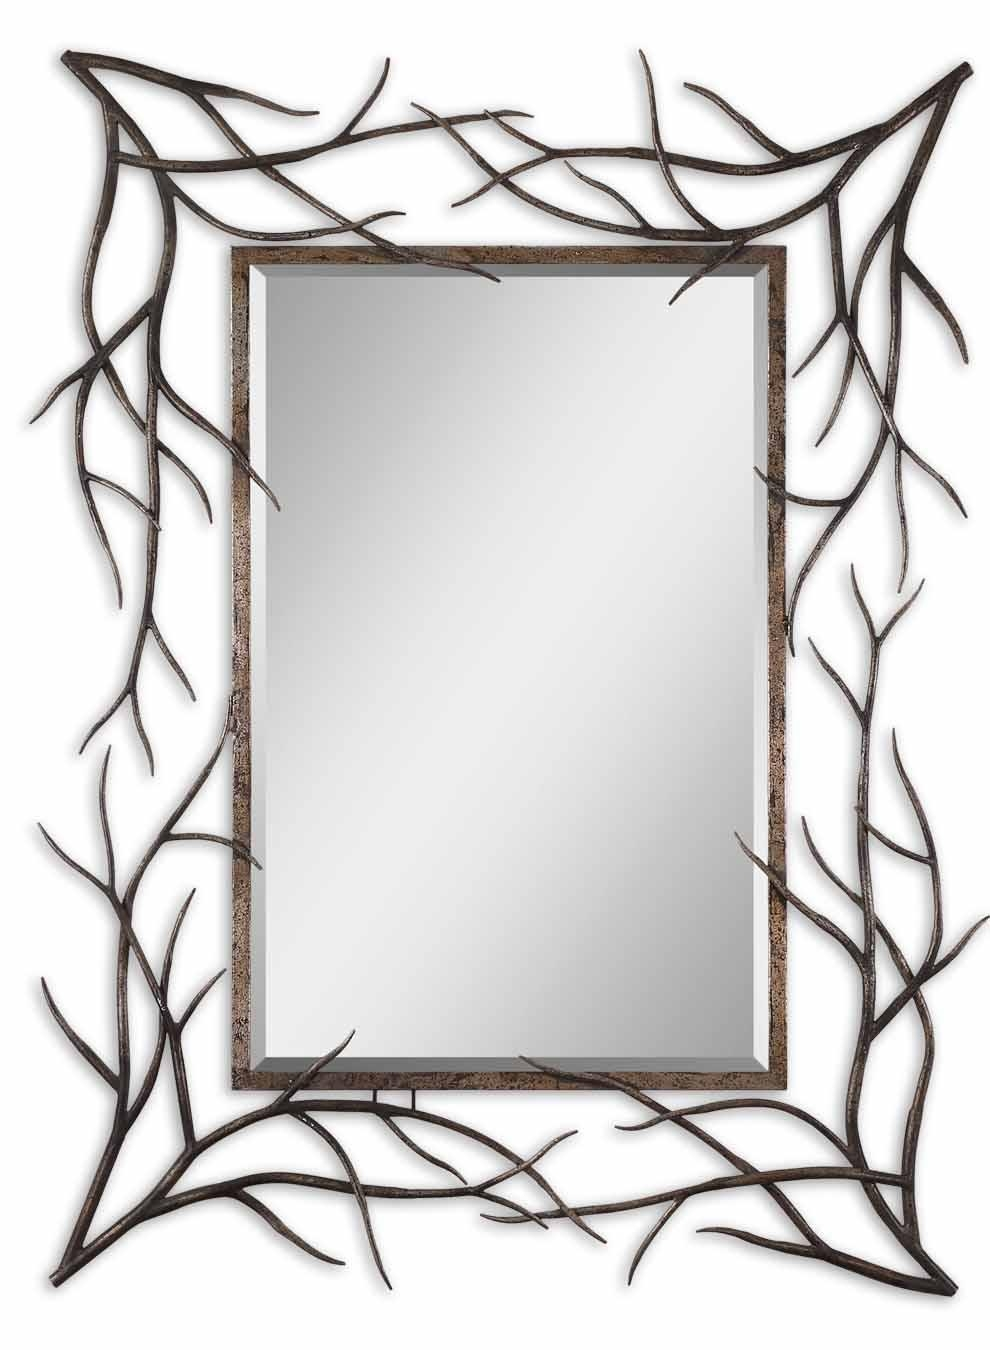 Hand Forged Mirror Frame Home Accents Mirrors All Mirrors Inside Ornamental Mirrors (Image 9 of 15)